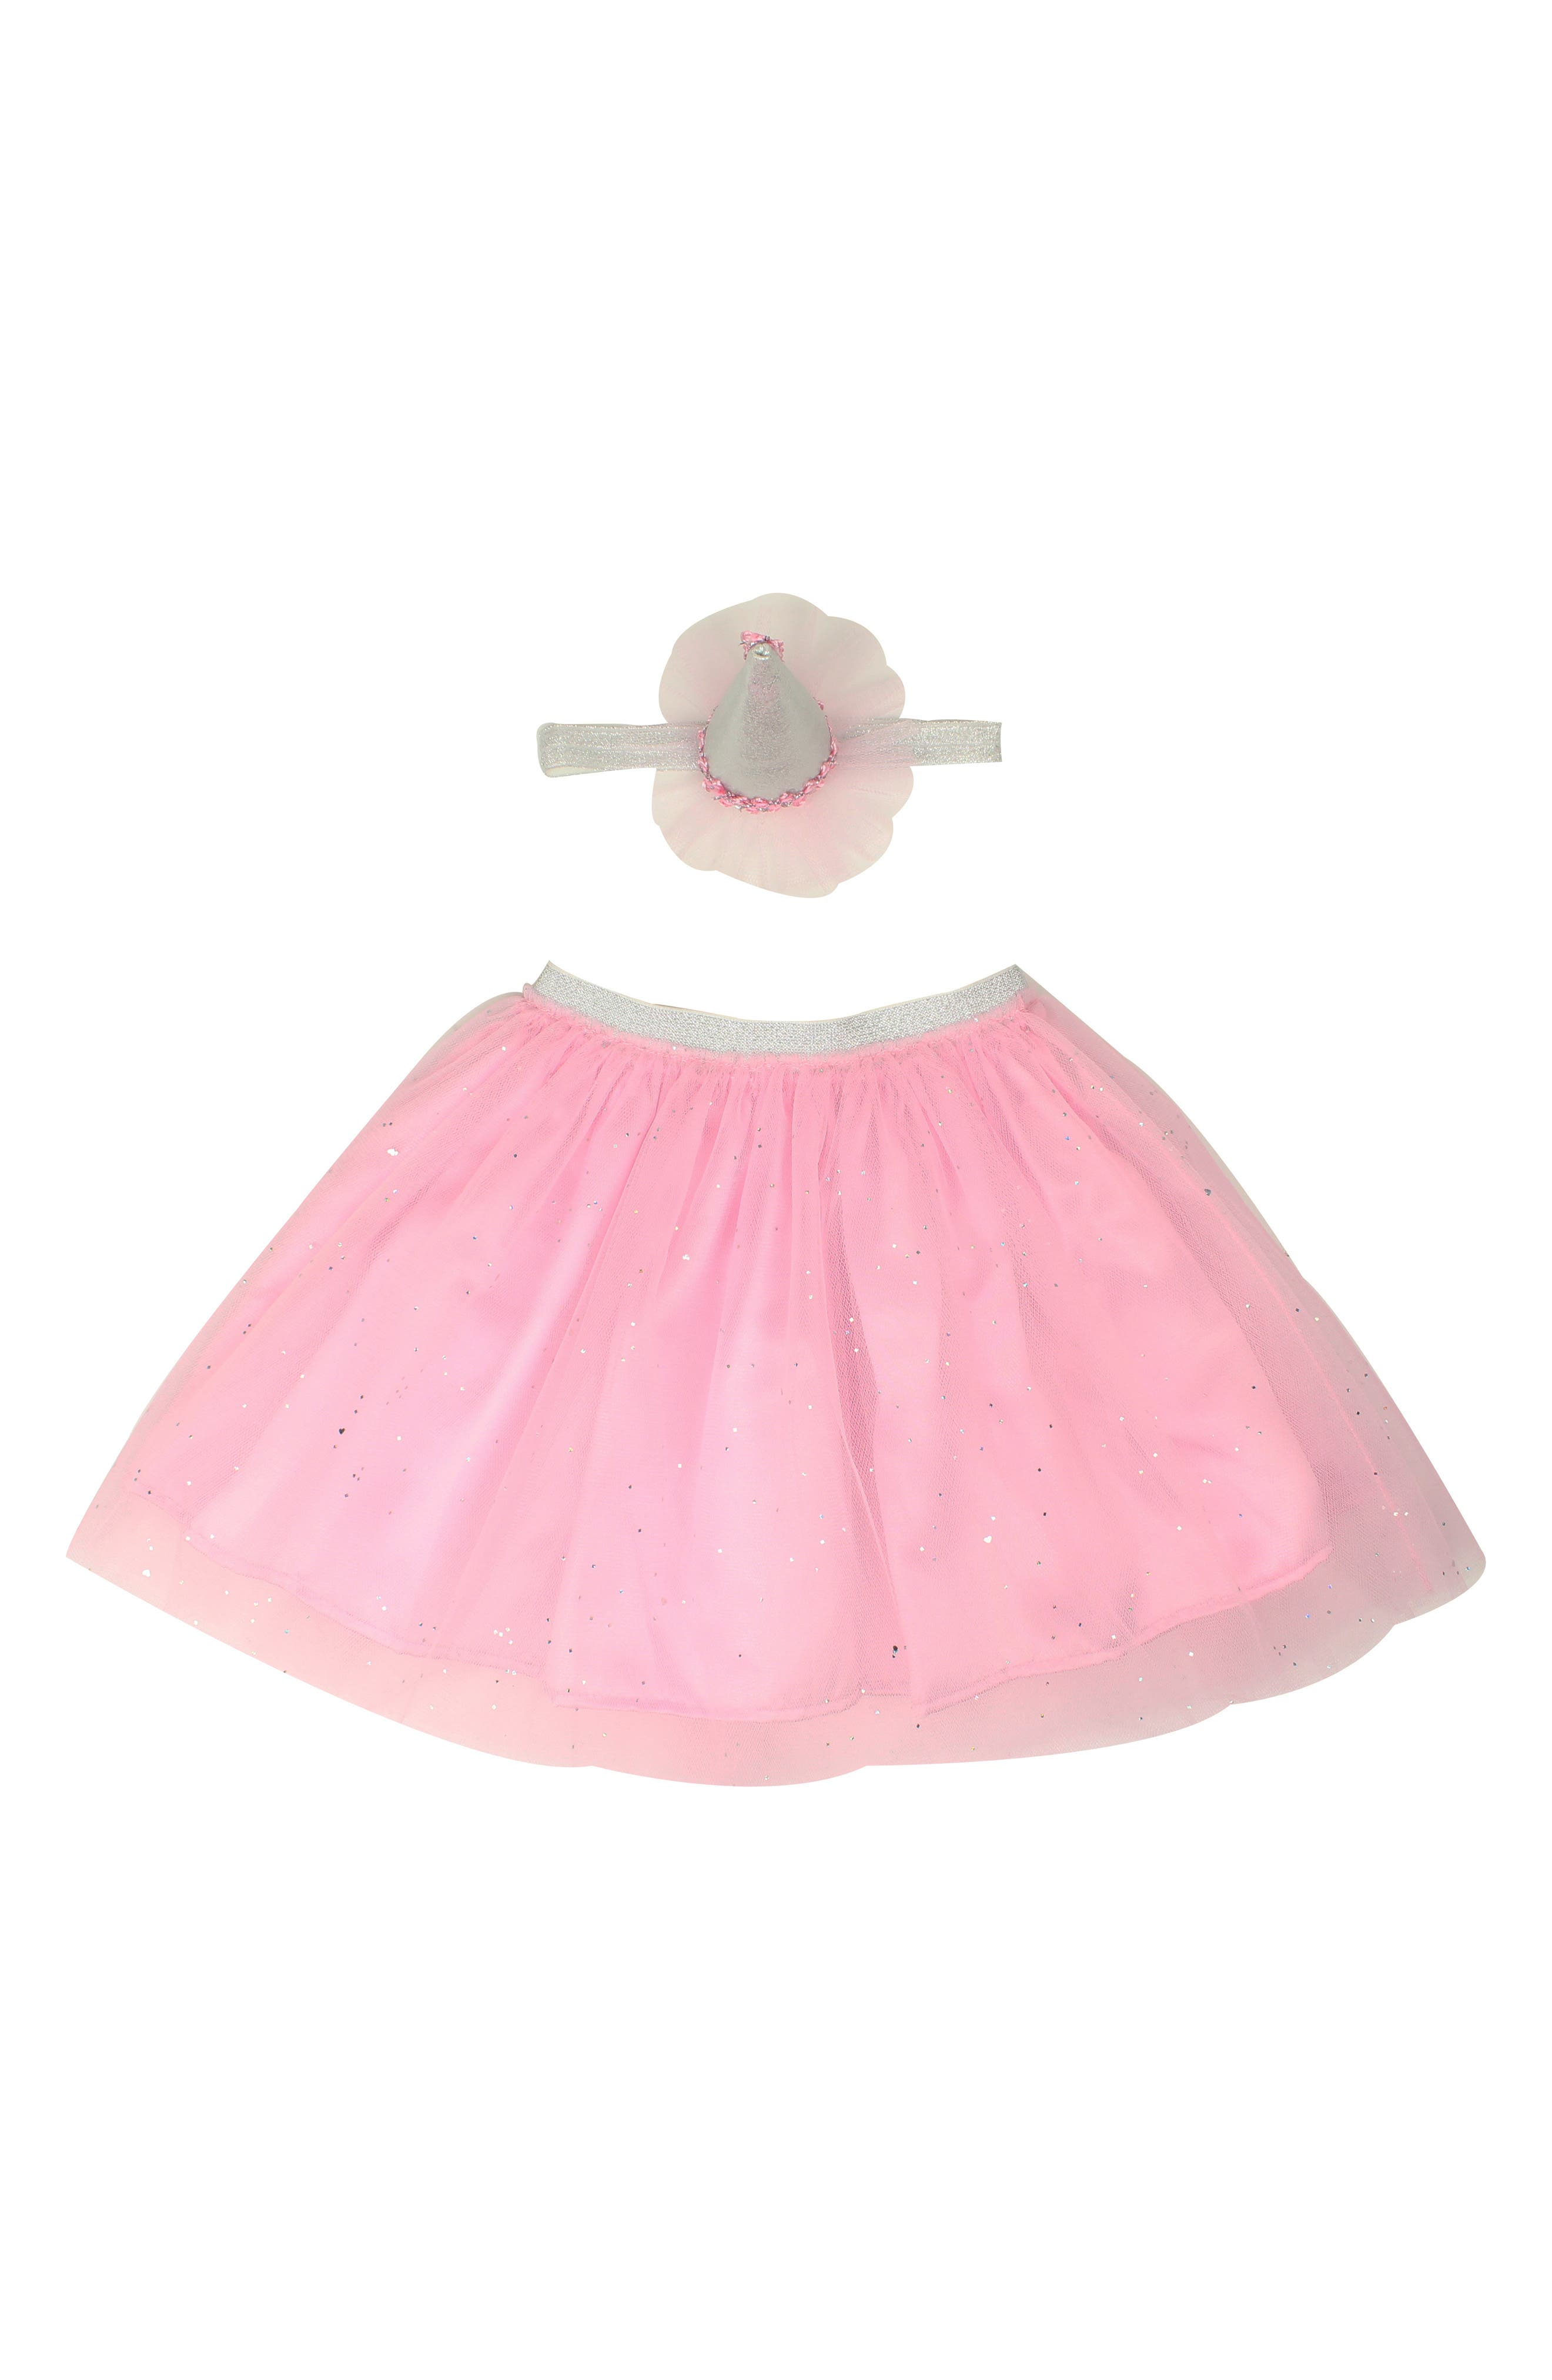 Tutu & Party Hat Headband Set,                         Main,                         color, PINK